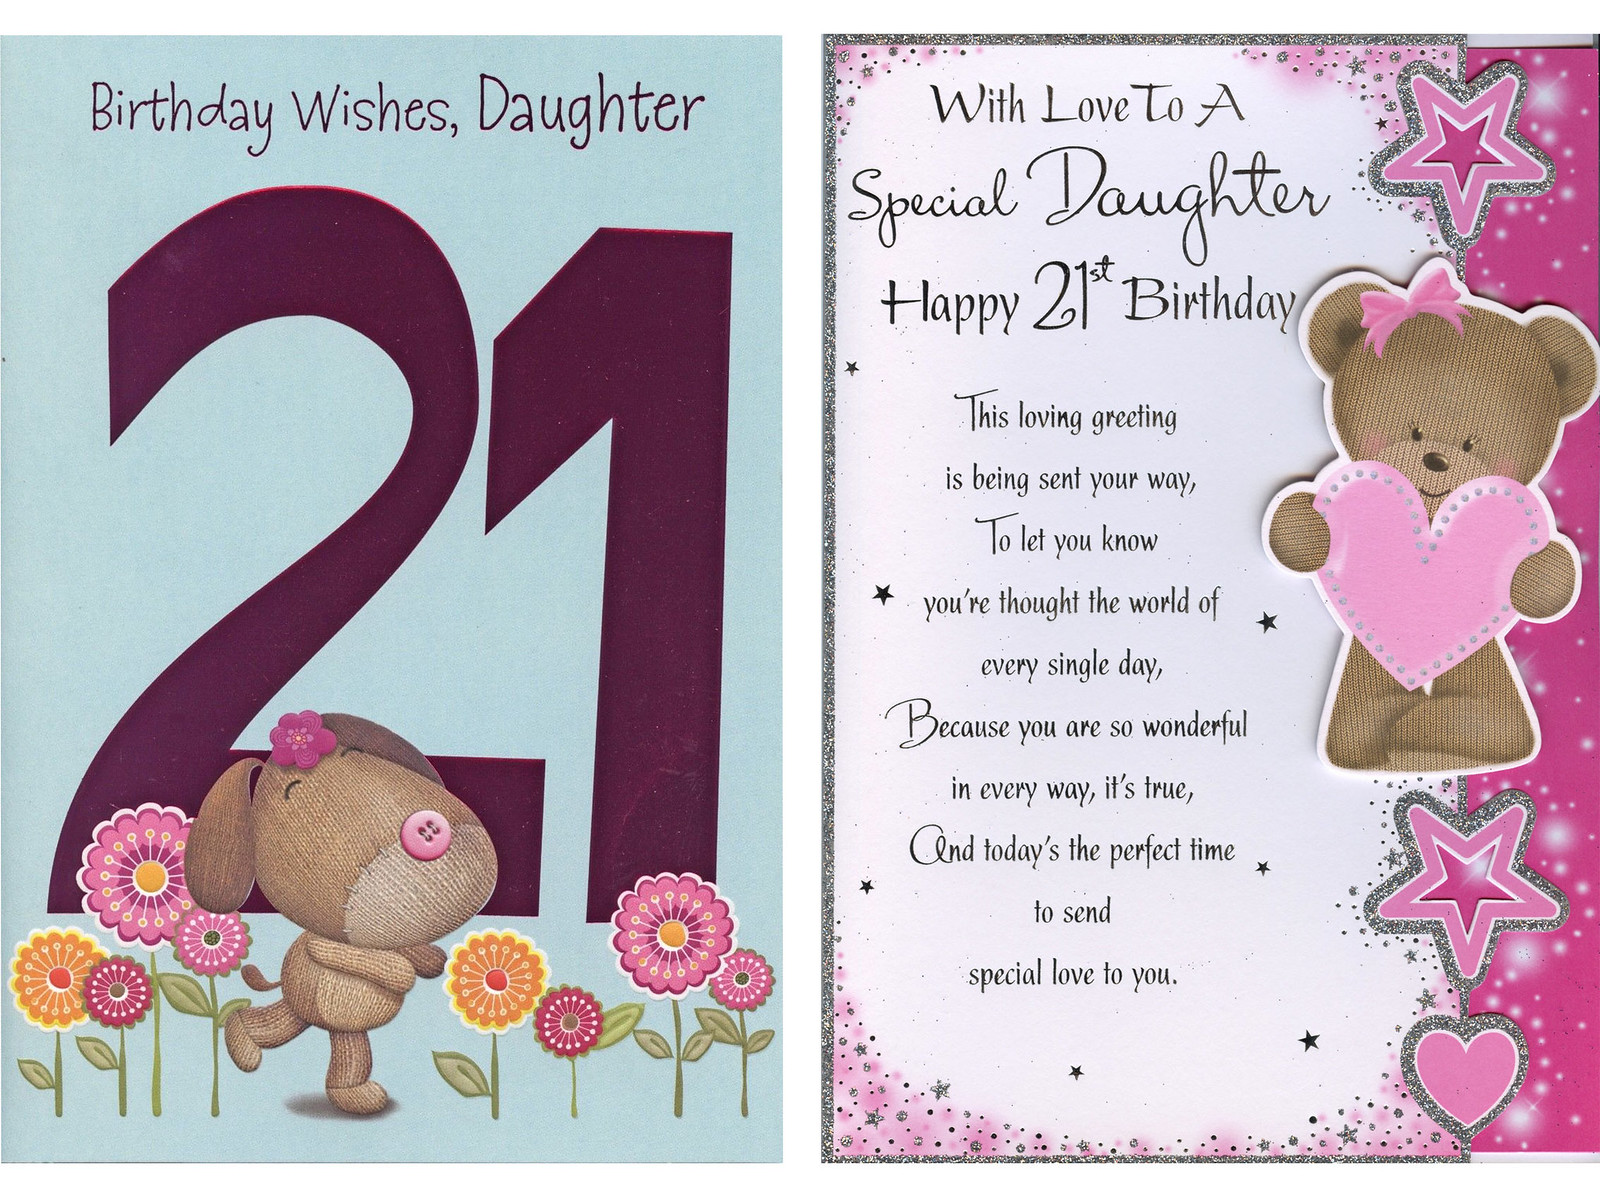 Details About LARGE BIRTHDAY WISHES DAUGHTER ON YOUR 21ST CARD 1ST PP